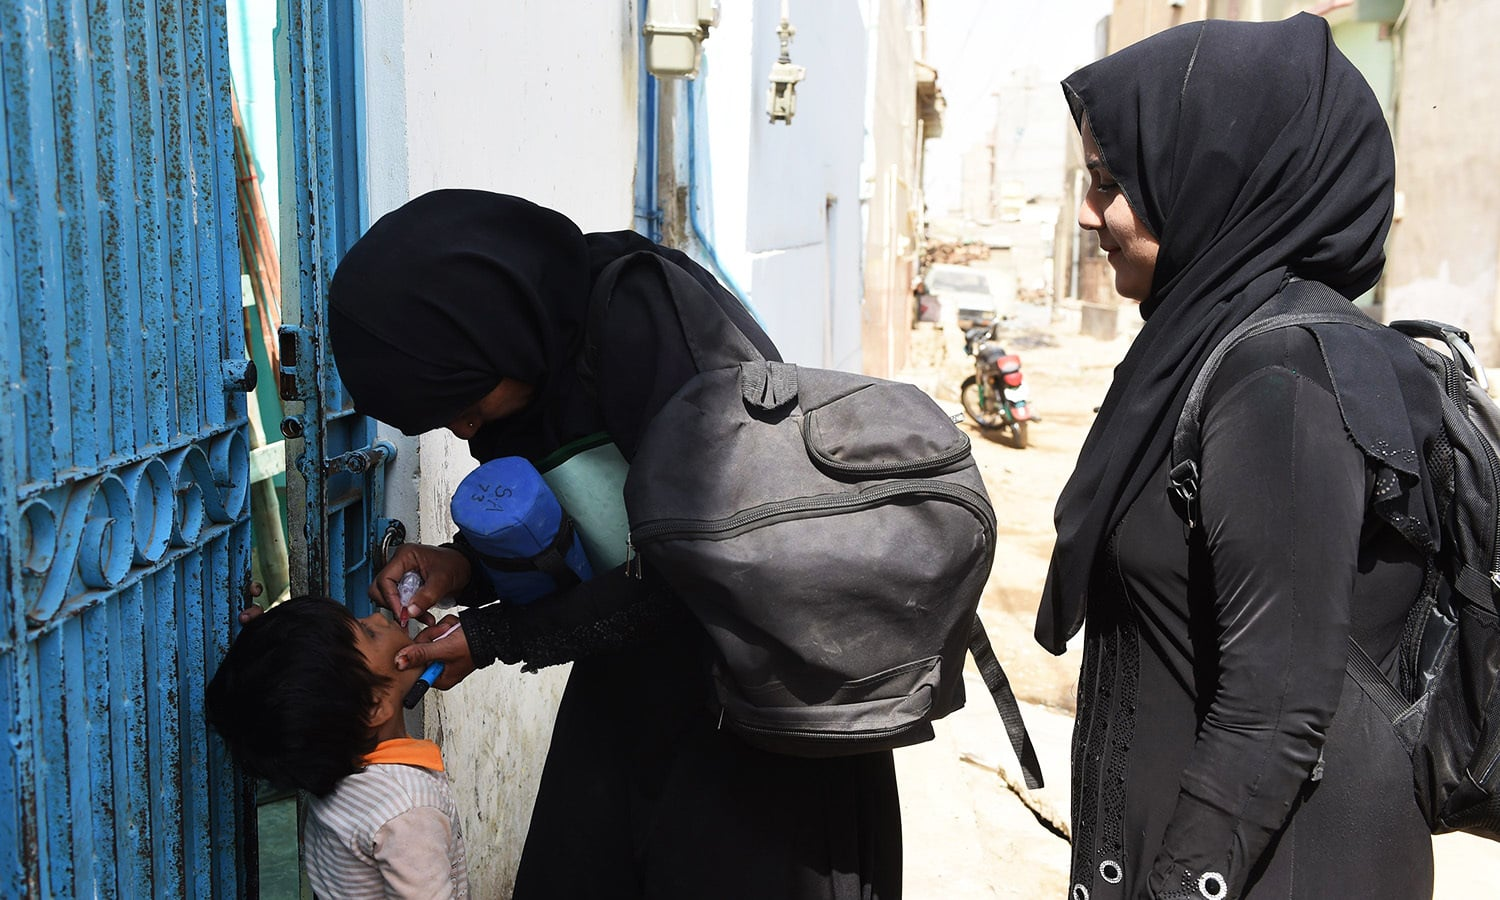 Health worker Shehnaz Ayaz (C) administers polio drops to a child during a door-to-door polio immunisation campaign in Karachi.—AFP